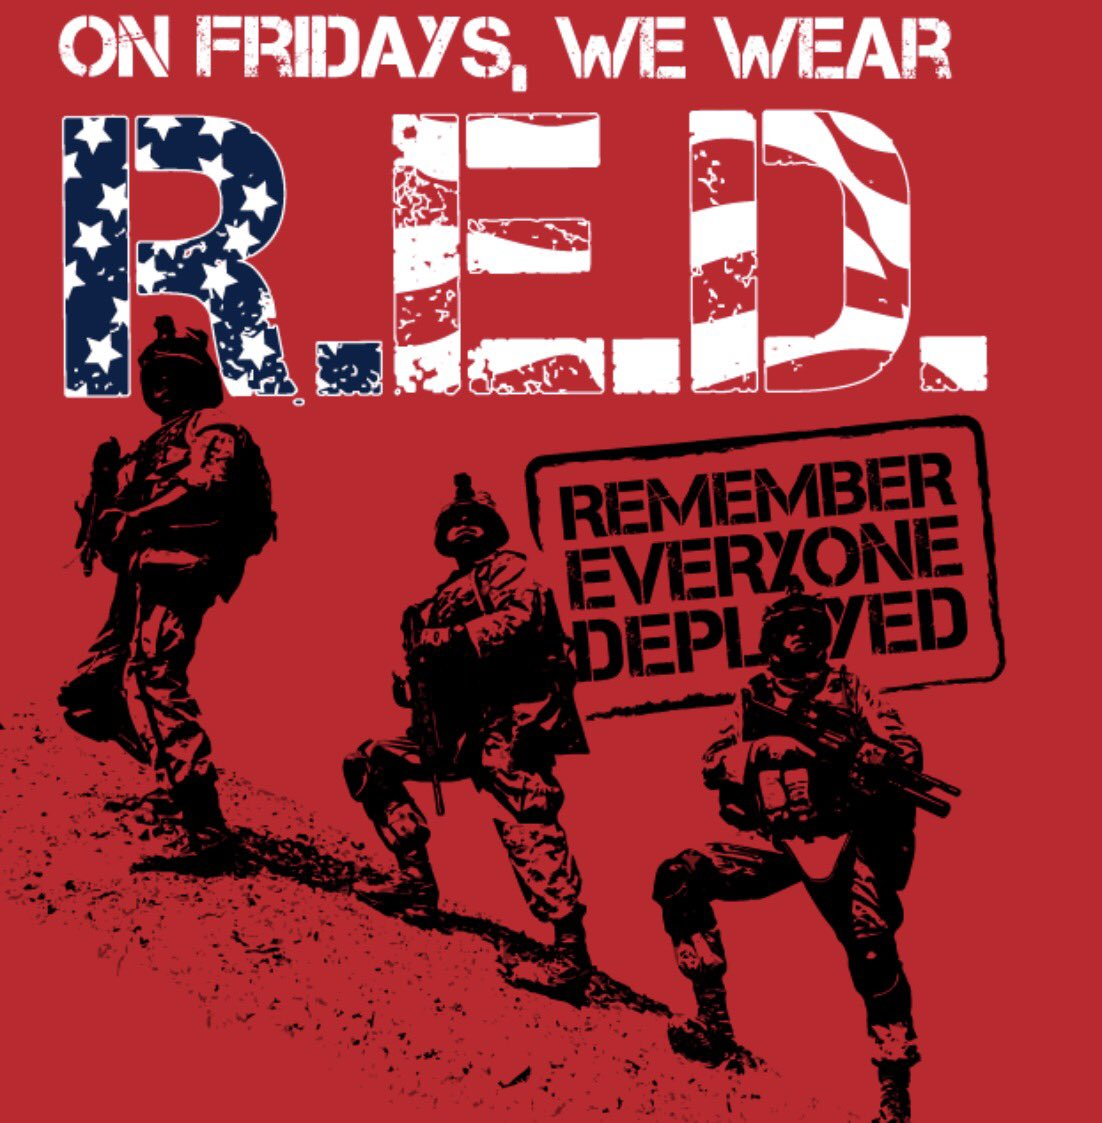 #RedFriday  We appreciate your service, and sacrifice, every single day ❤️🇺🇸 ❤️🇺🇸#SupportOurTroops